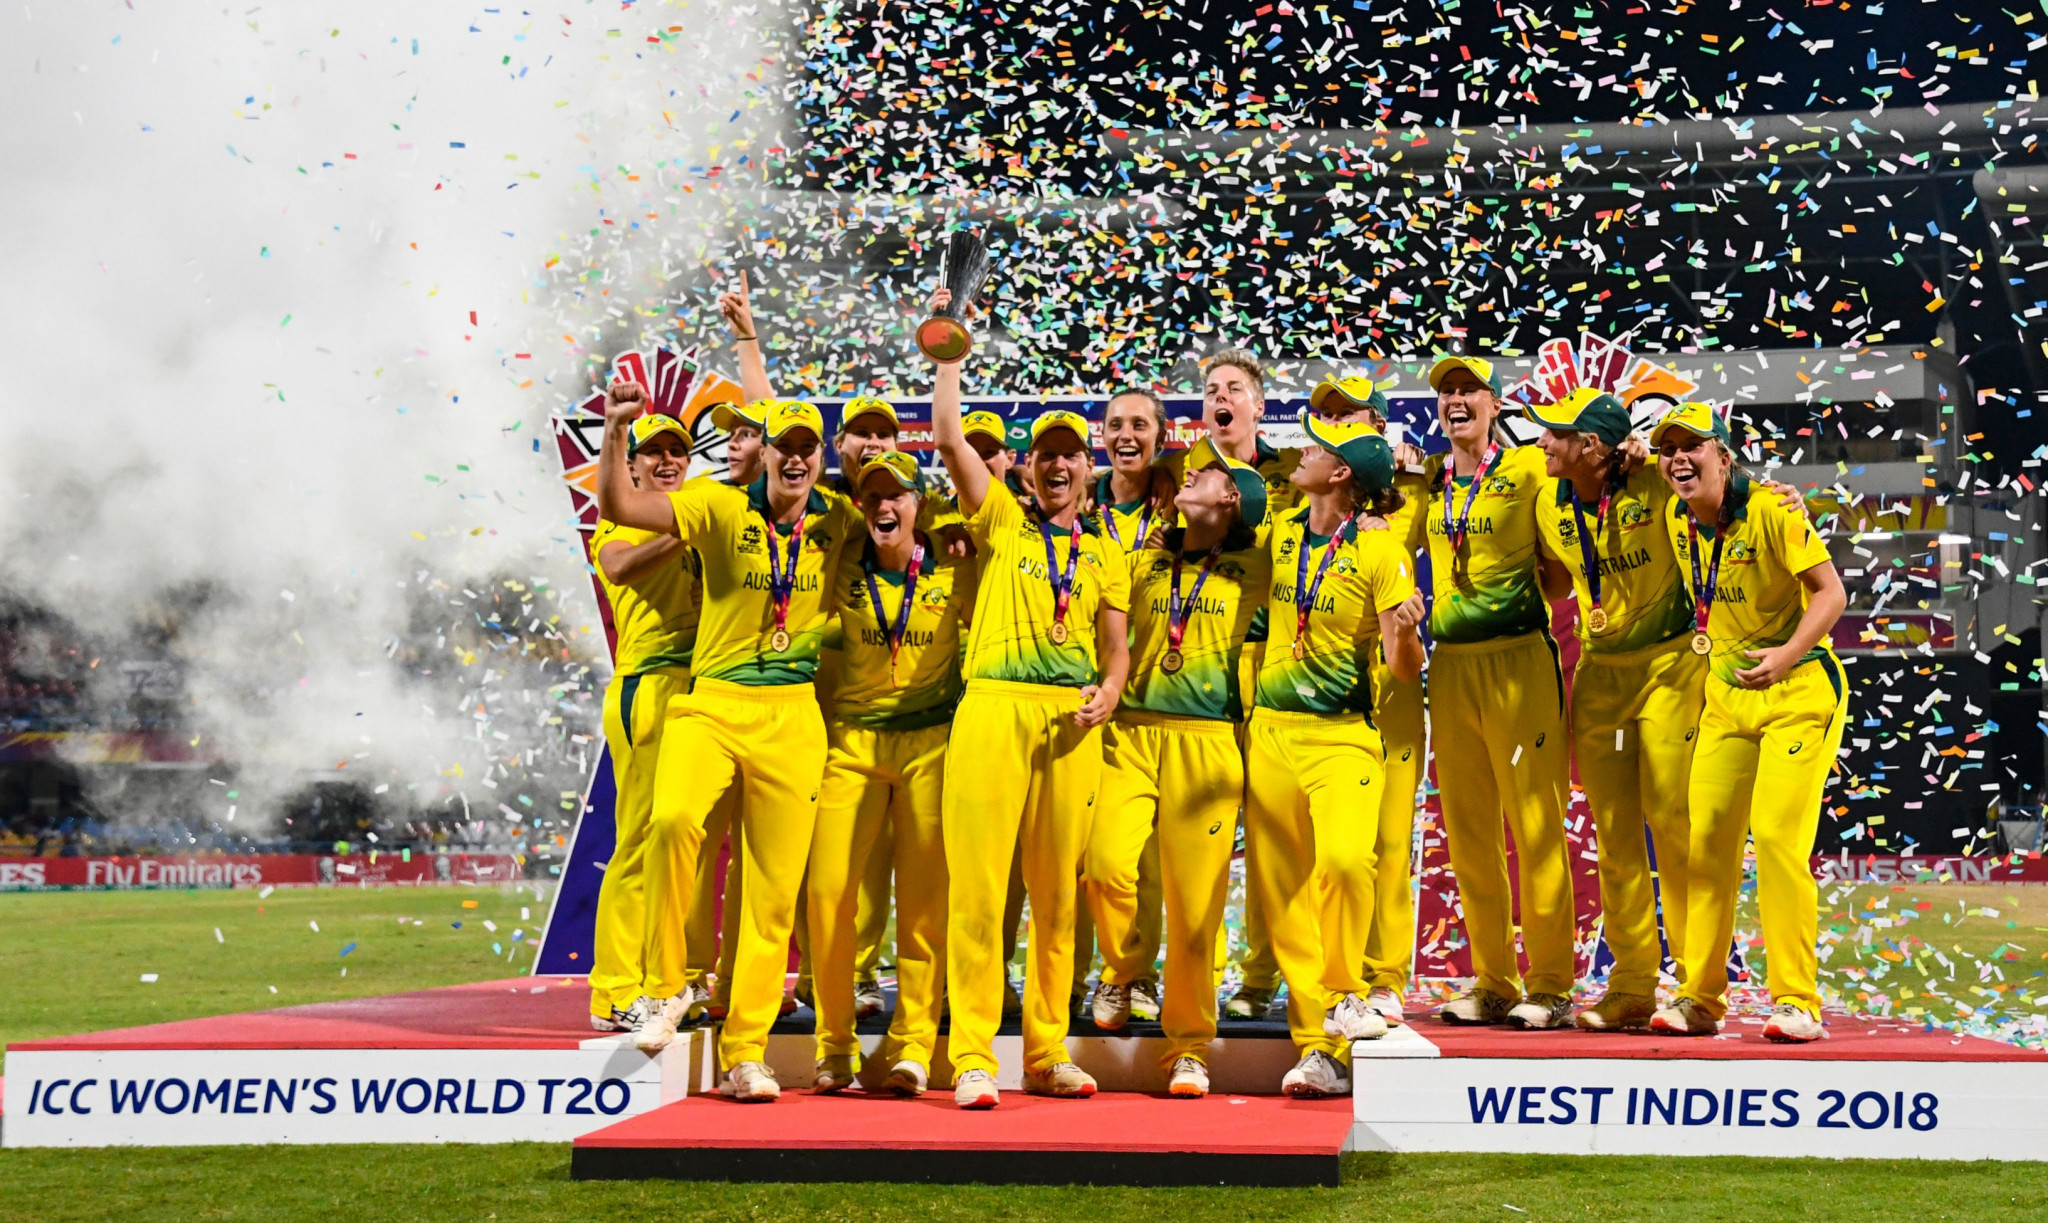 The announcement coincided with the end of the Women's World Twenty20 in the West Indies ©Getty Images